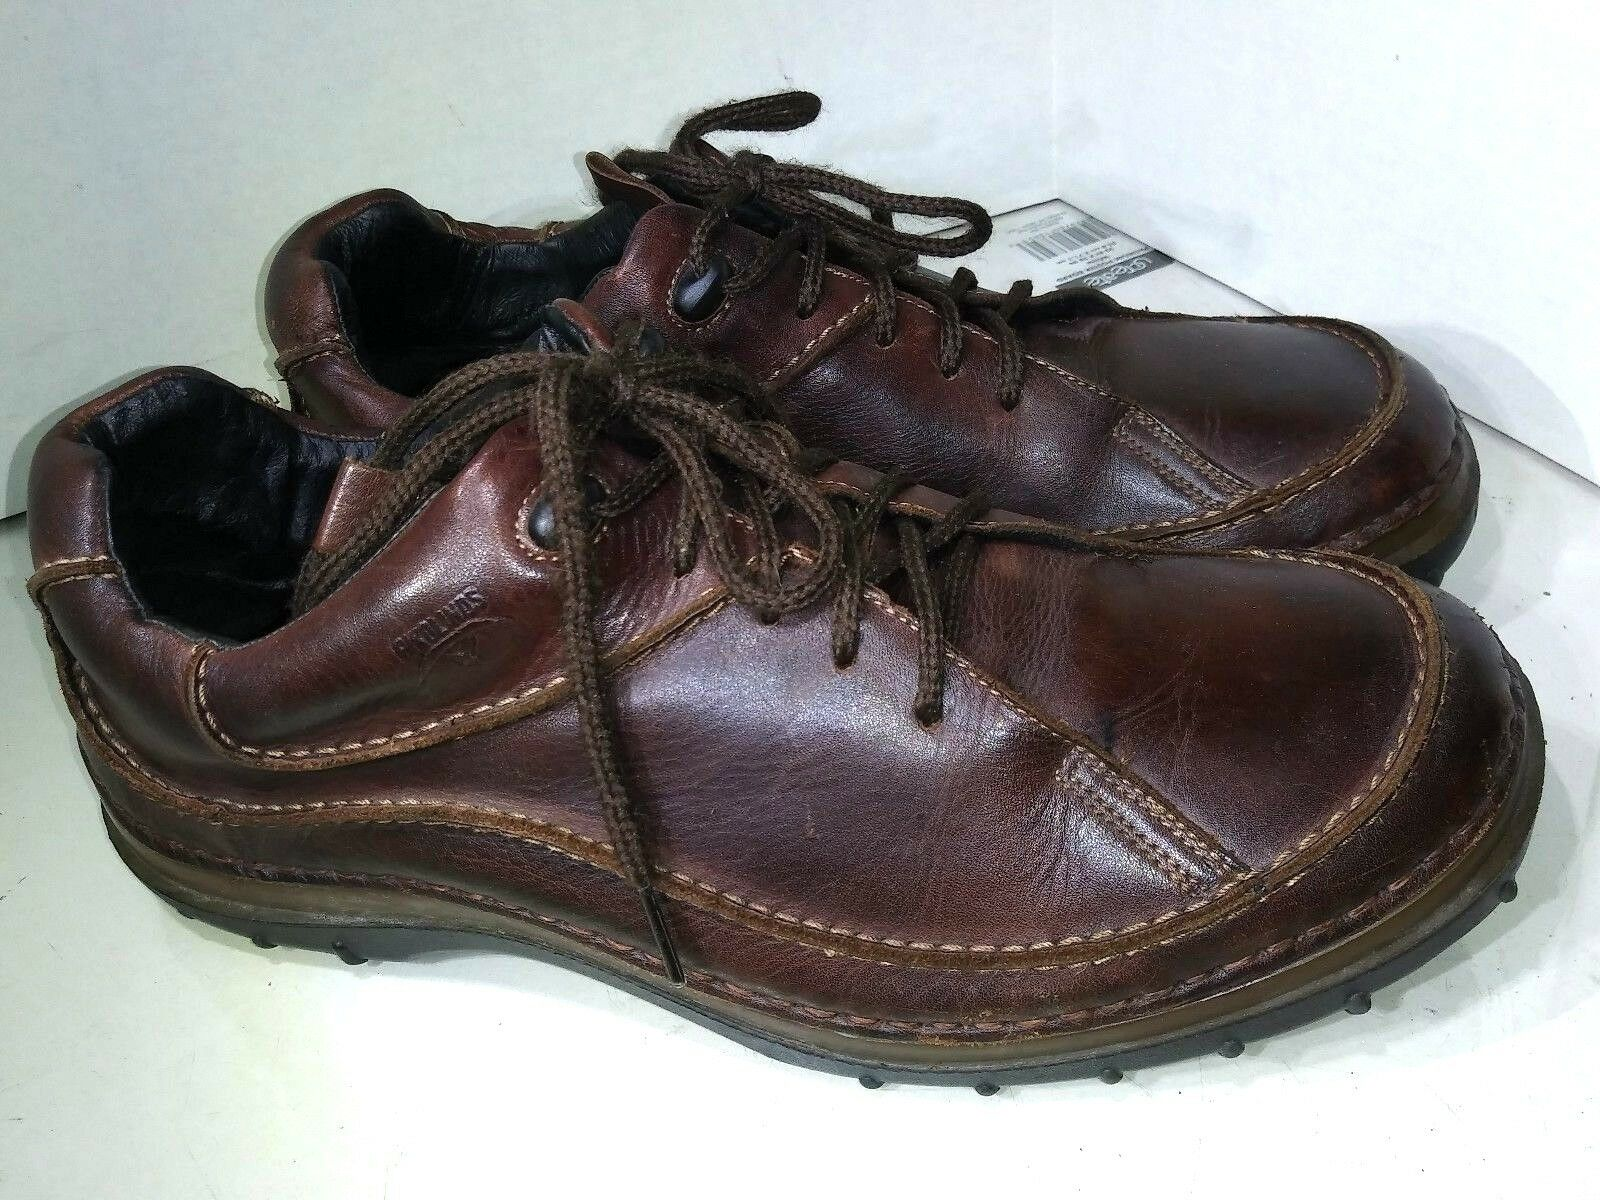 Pikolinos Brown Leather Sneakers Casual Oxfords Hiking shoes Mens sIze 44